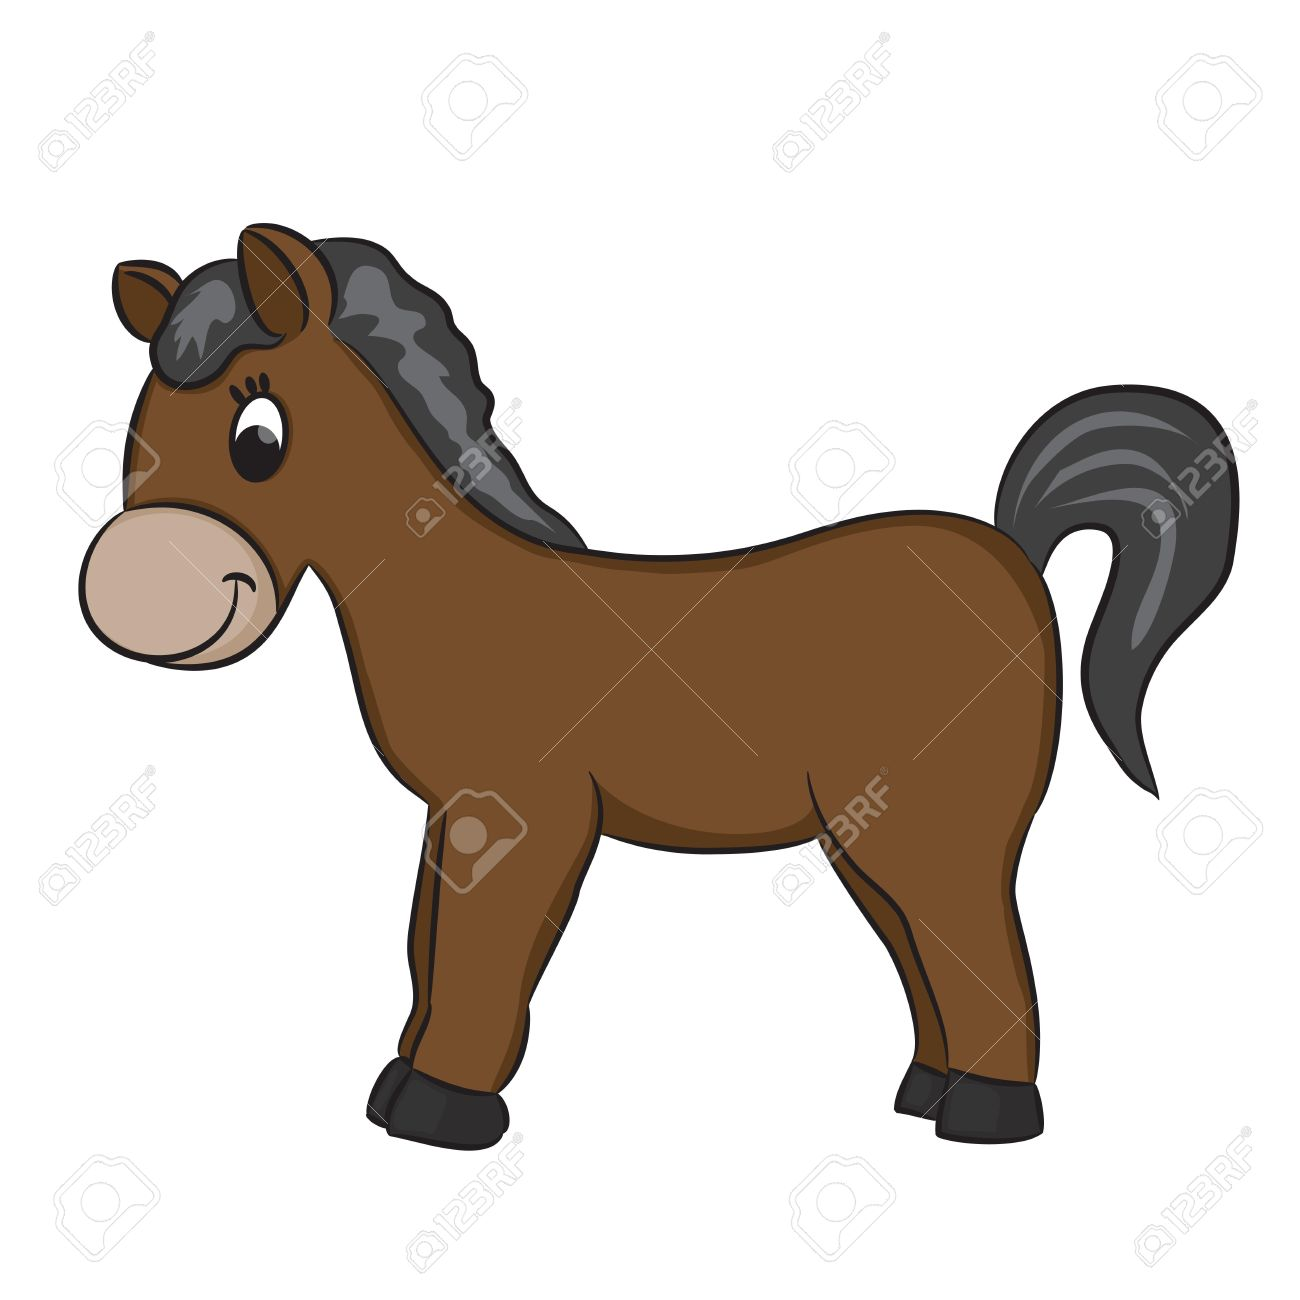 1300x1300 Breathtaking Cartoon Horse Pictures 13 Horses Collection 003